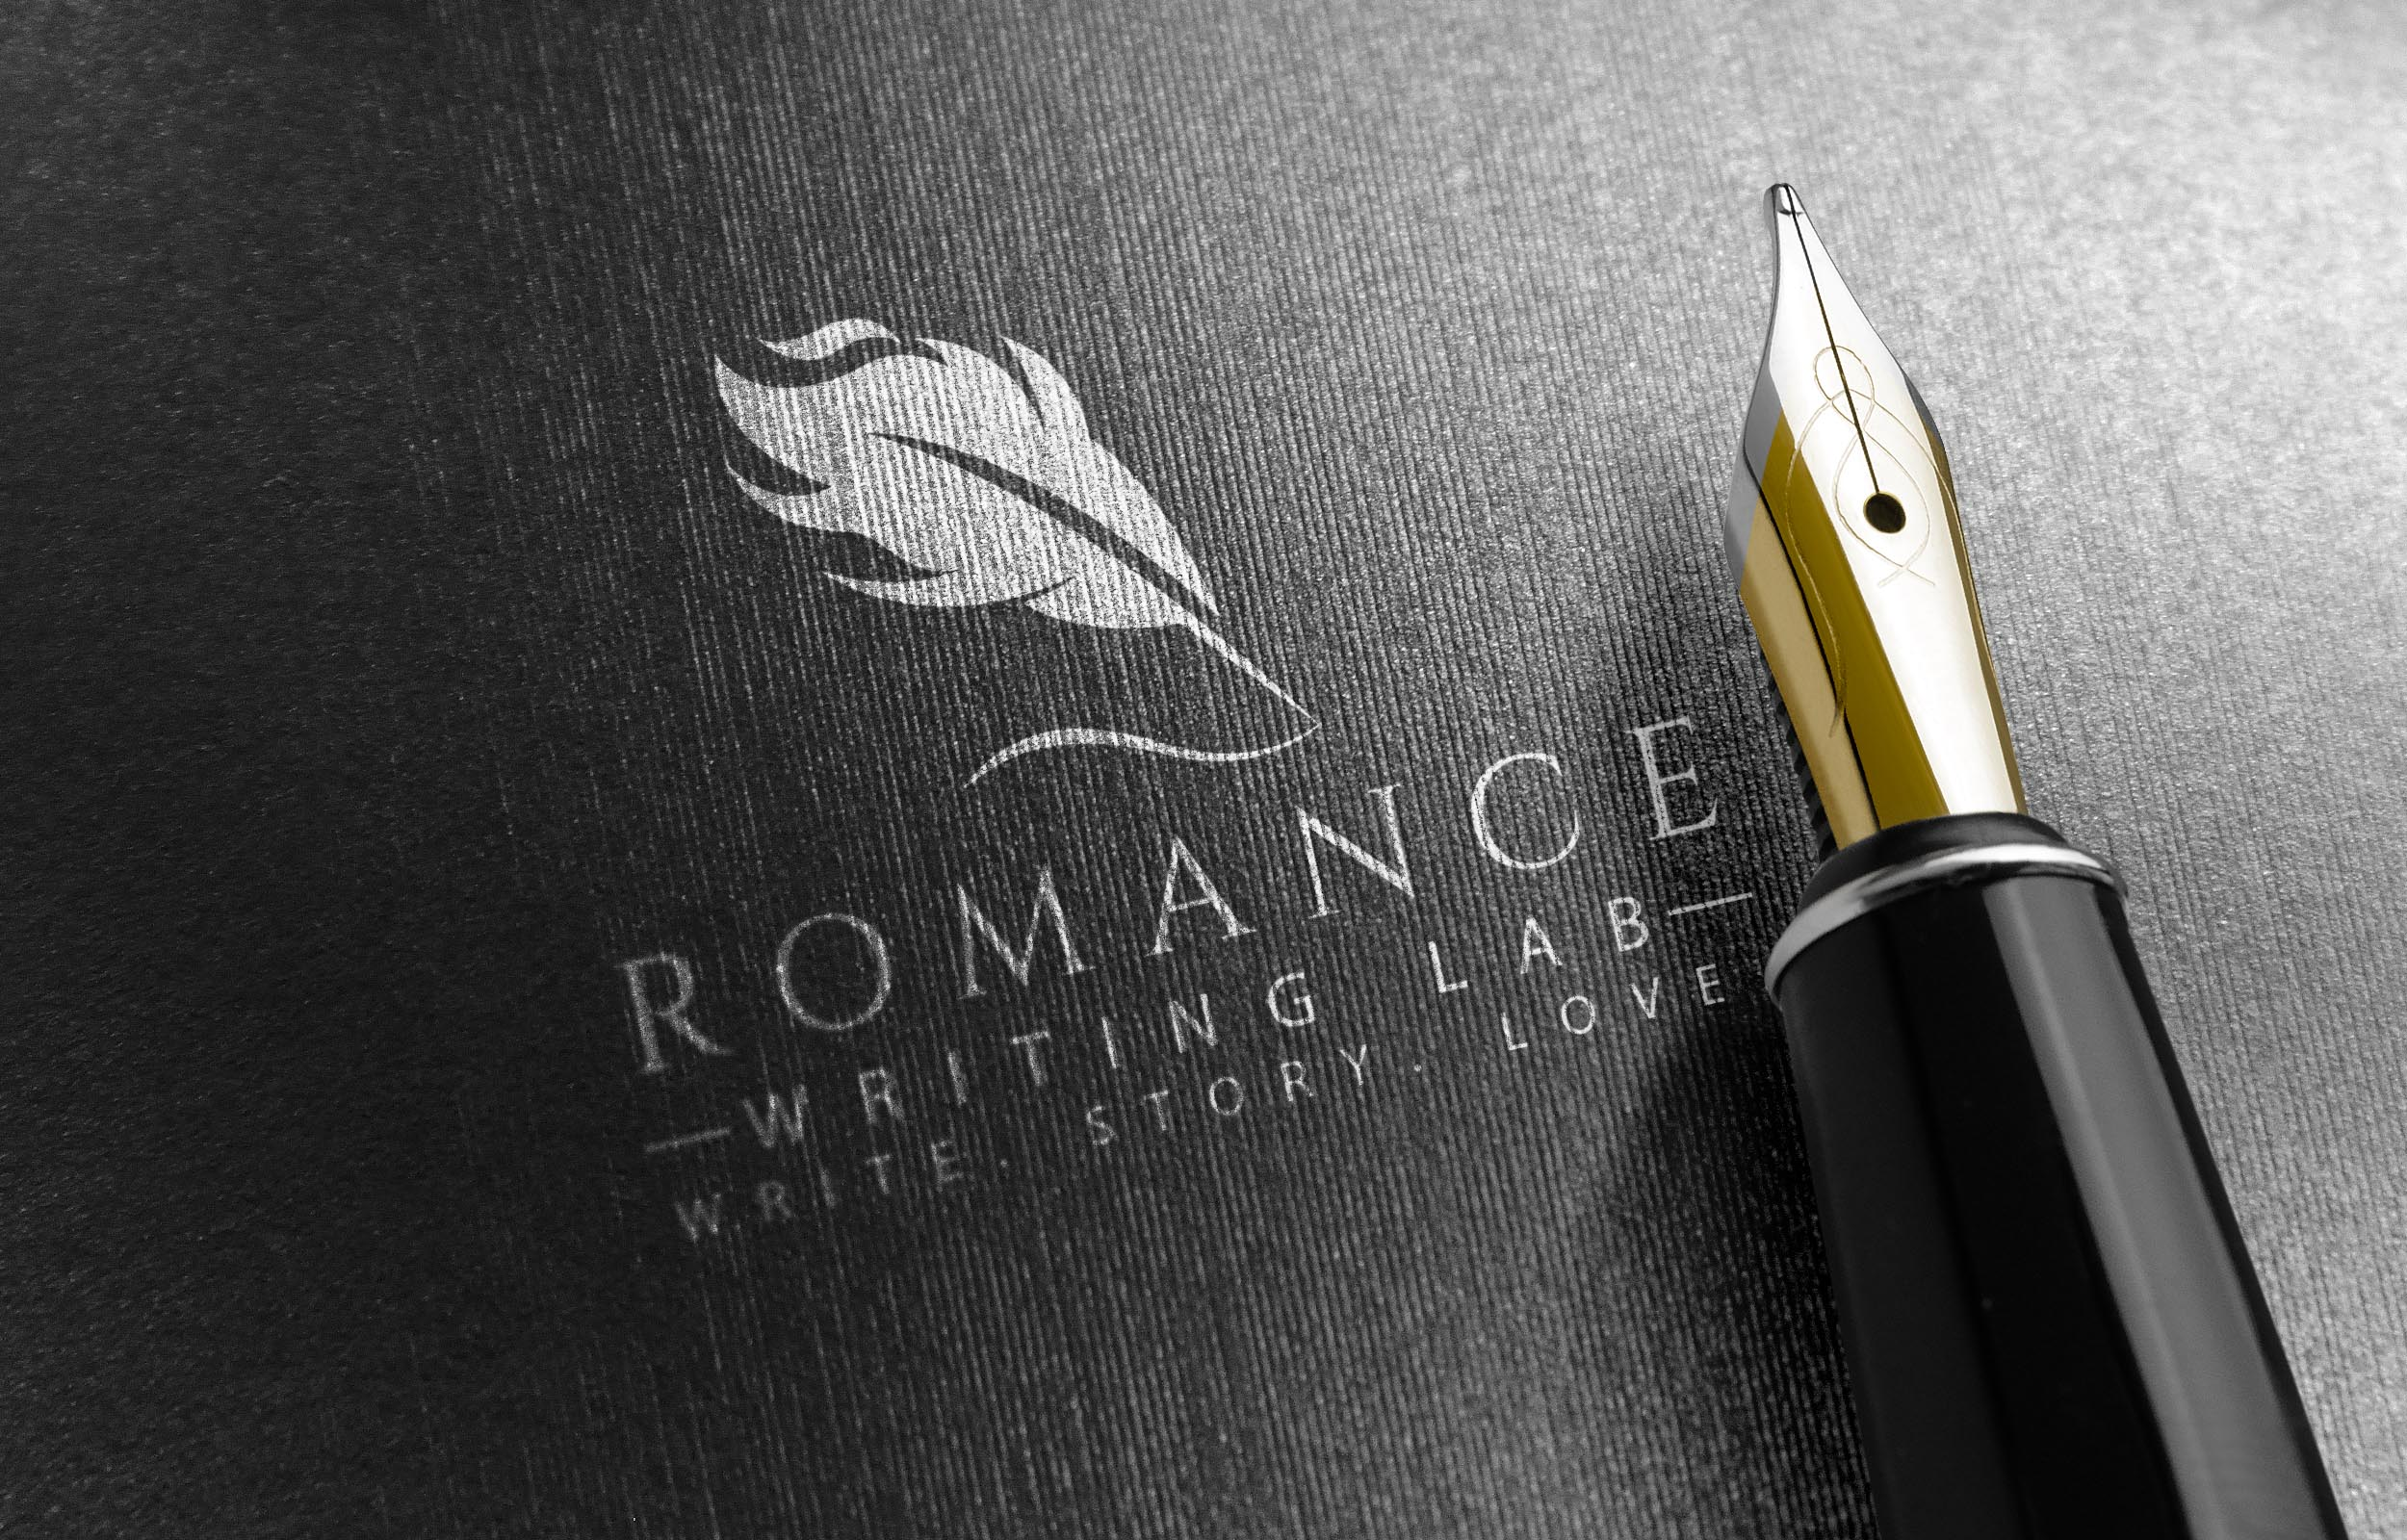 Online courses for romance writing